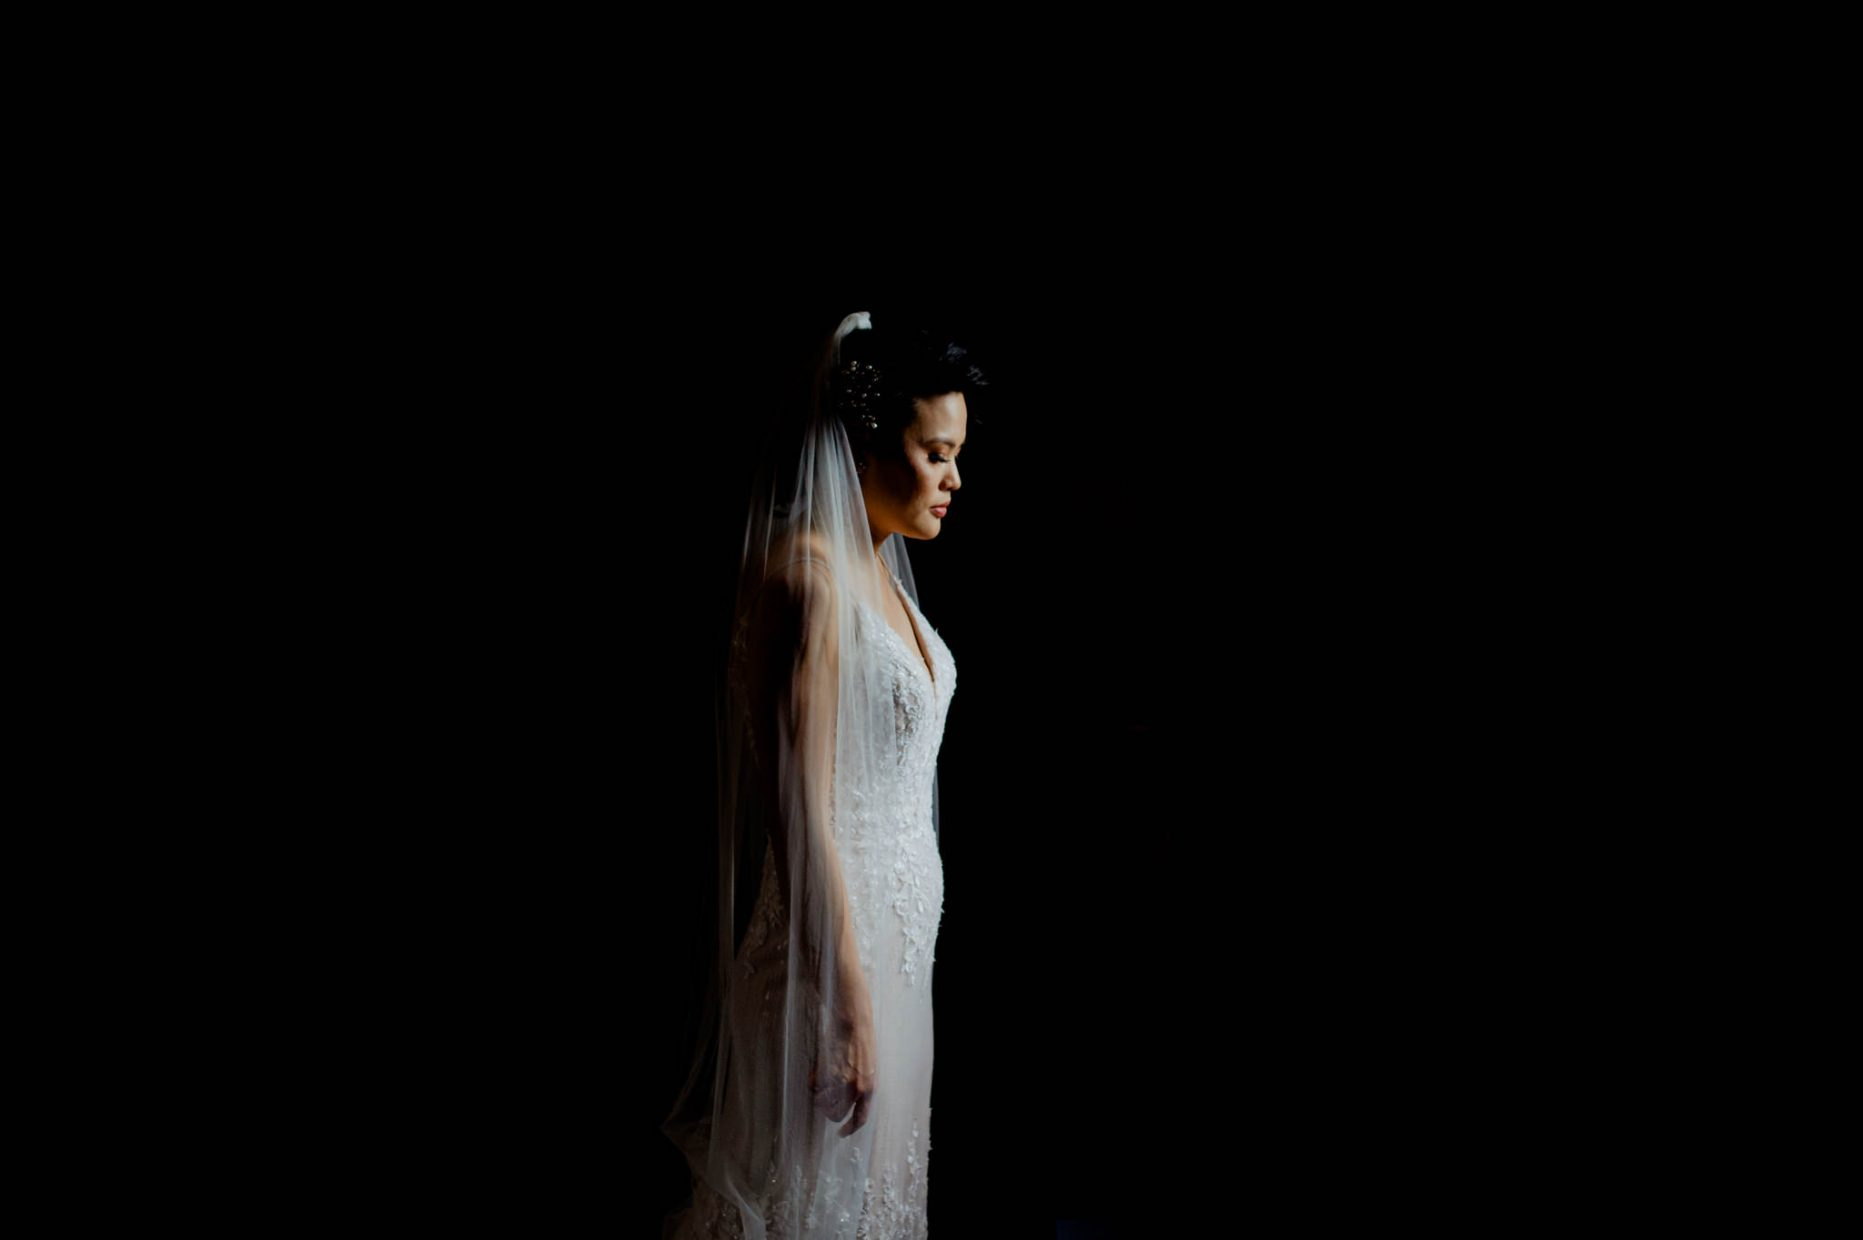 An asian bride stands and closes her eyes in a spot of light against a black background